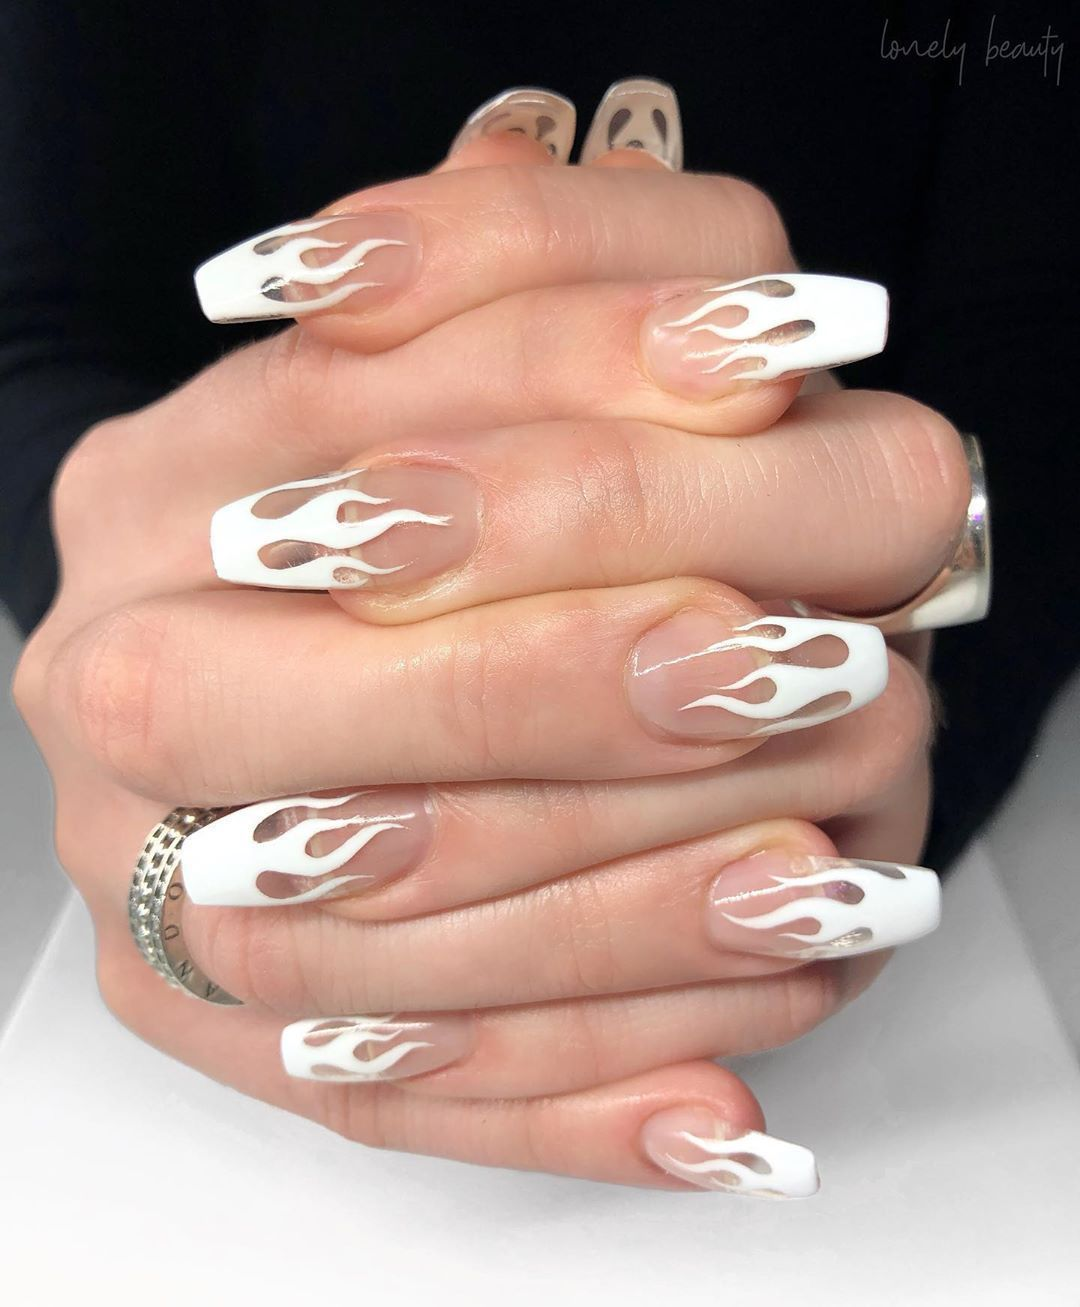 Pin On Clear Acrylic Nails In 2020 Coffin Nails Designs Fire Nails Grunge Nails